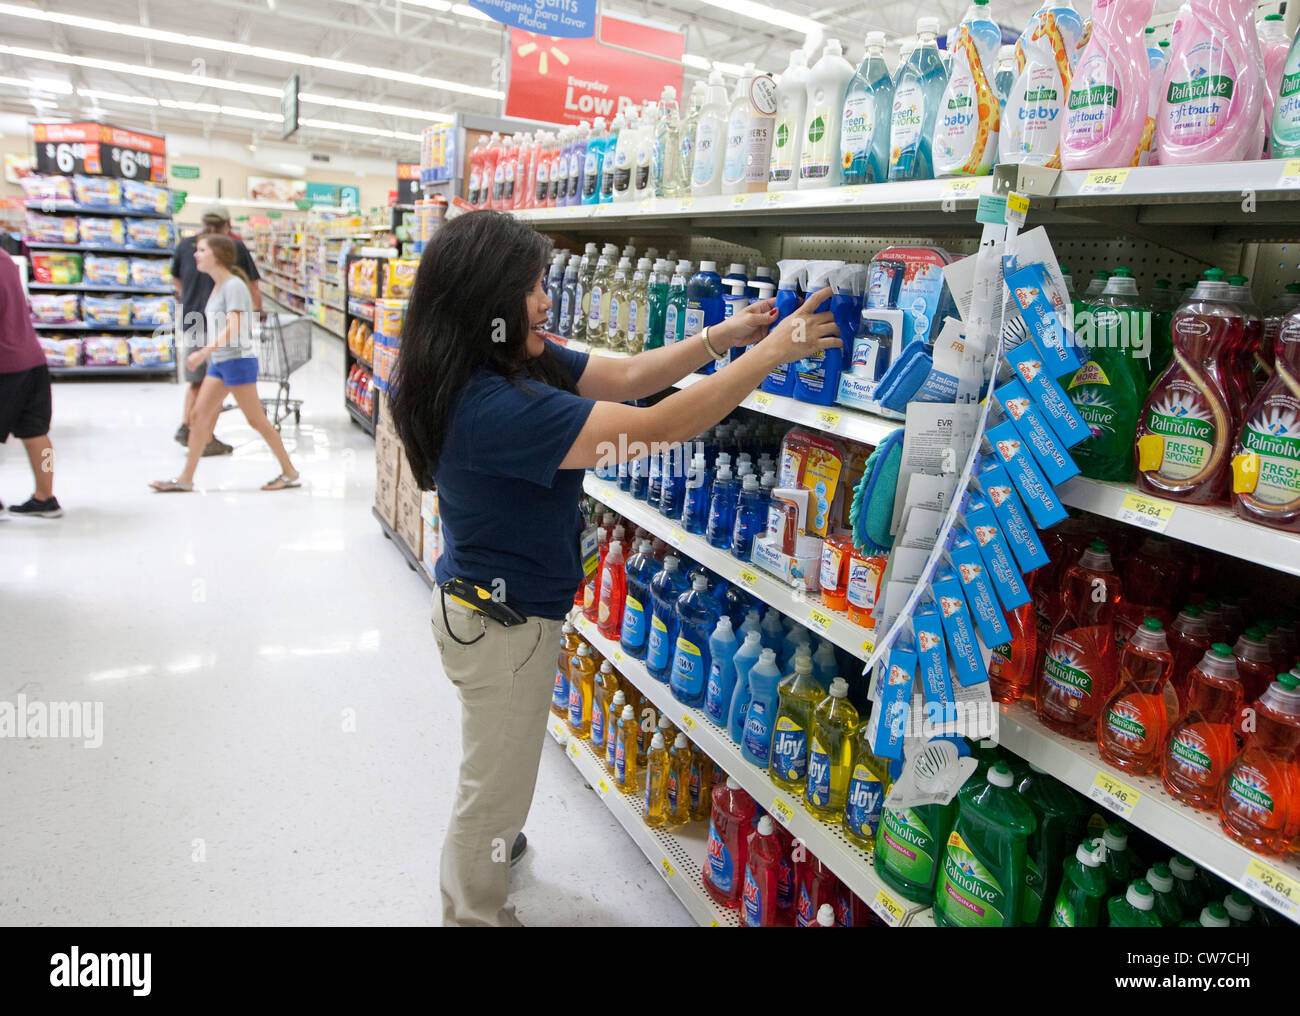 Hispanic female employee organizes cleaning products on shelves in ...